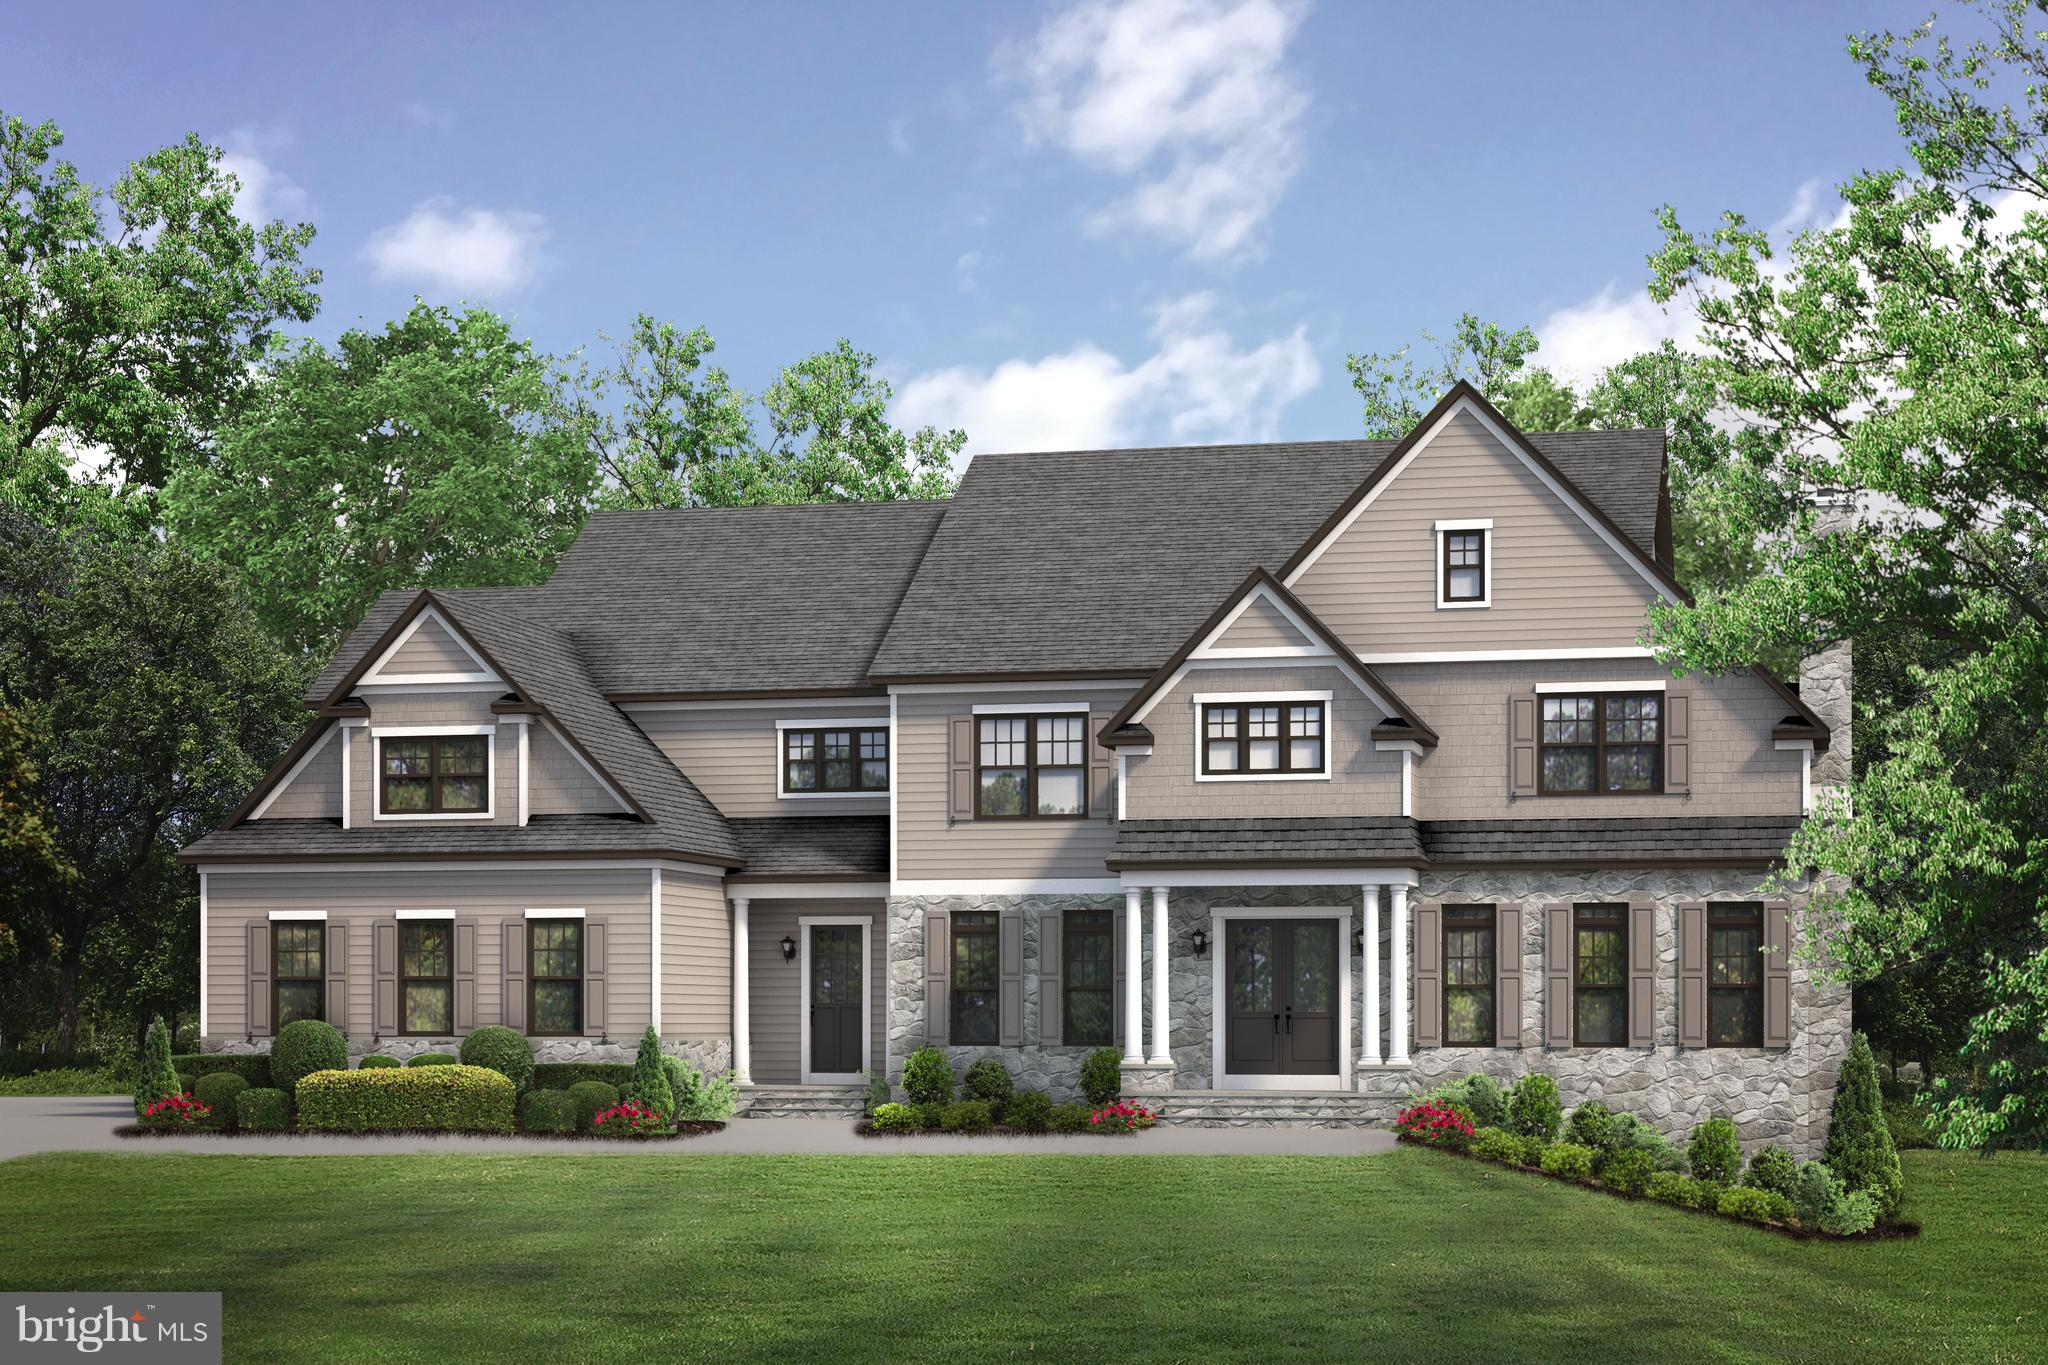 325 GOLF COURSE ROAD, OWINGS MILLS, MD 21117